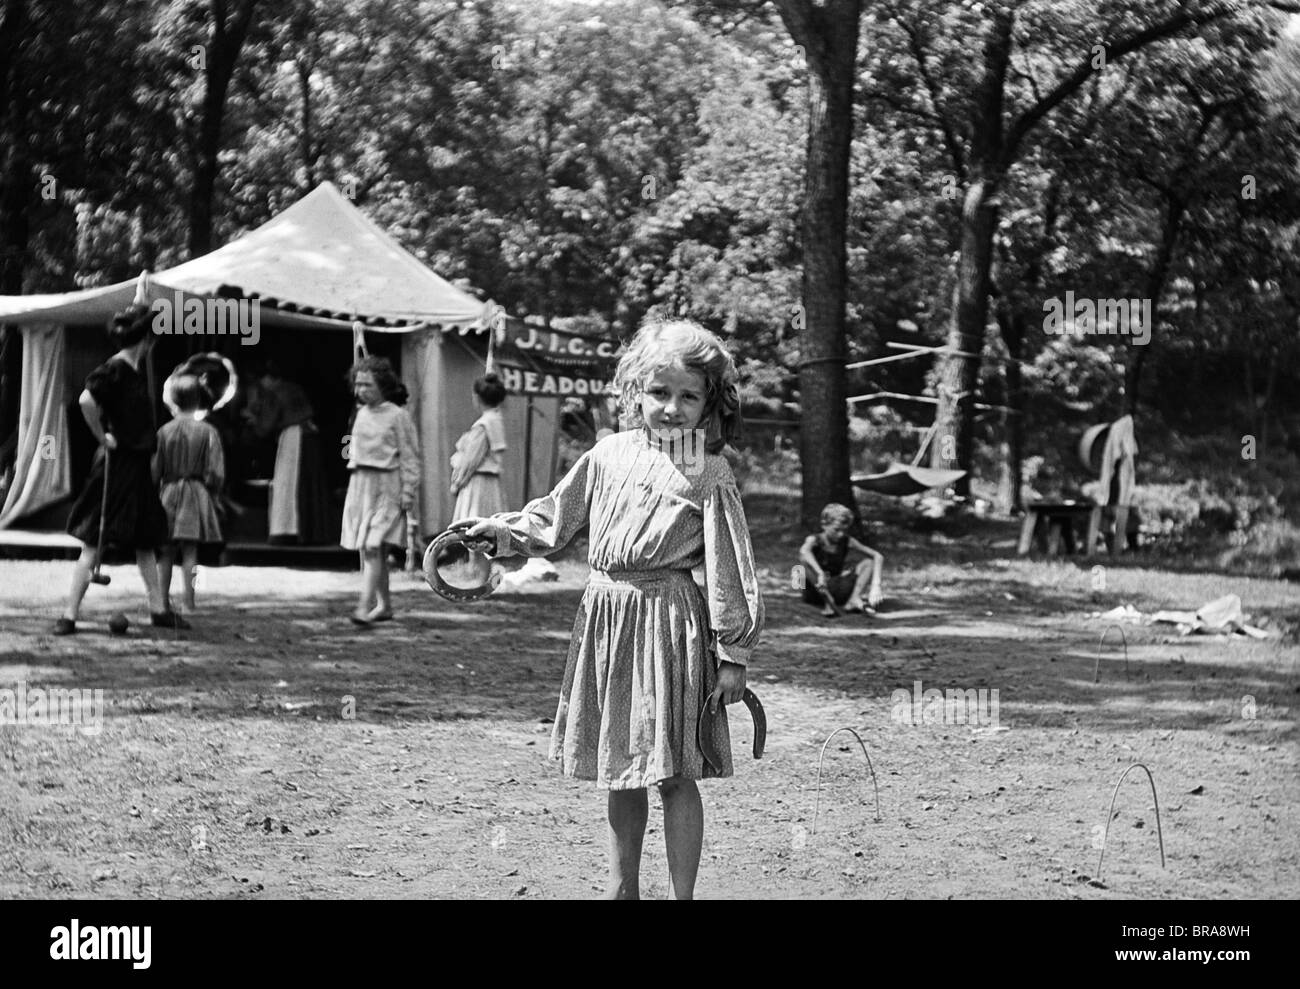 1910s LITTLE GIRL PITCHING HORSESHOES IN A GIRLS SUMMER CAMP KANSAS CITY MISSOURI - Stock Image